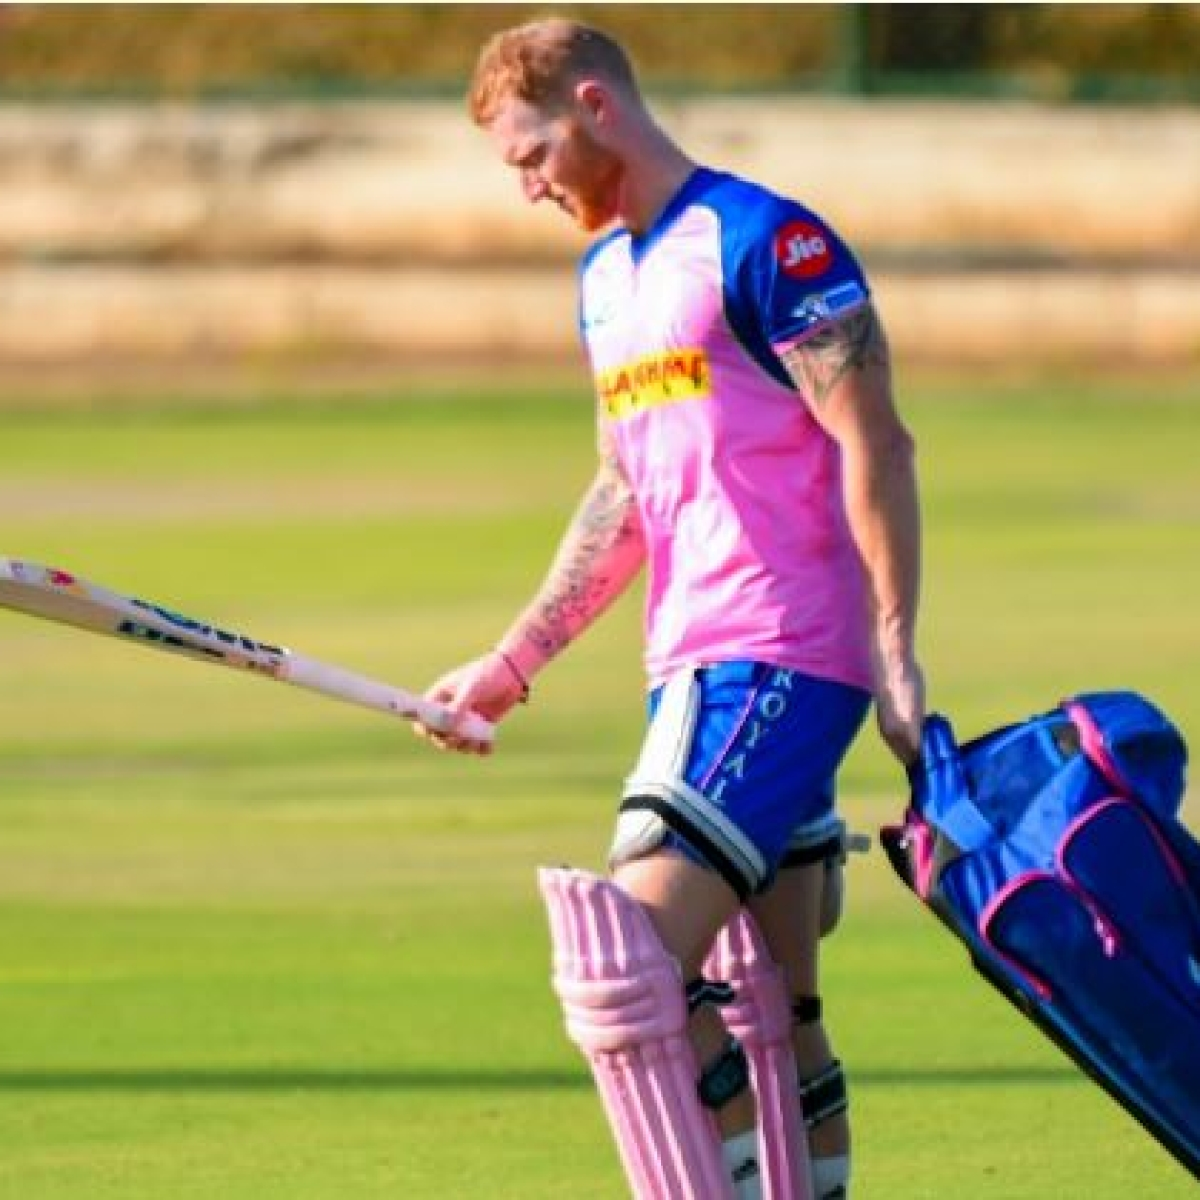 IPL 2021: Injured Ben Stokes to undergo finger surgery in Leeds on Monday, sidelined for 12 weeks